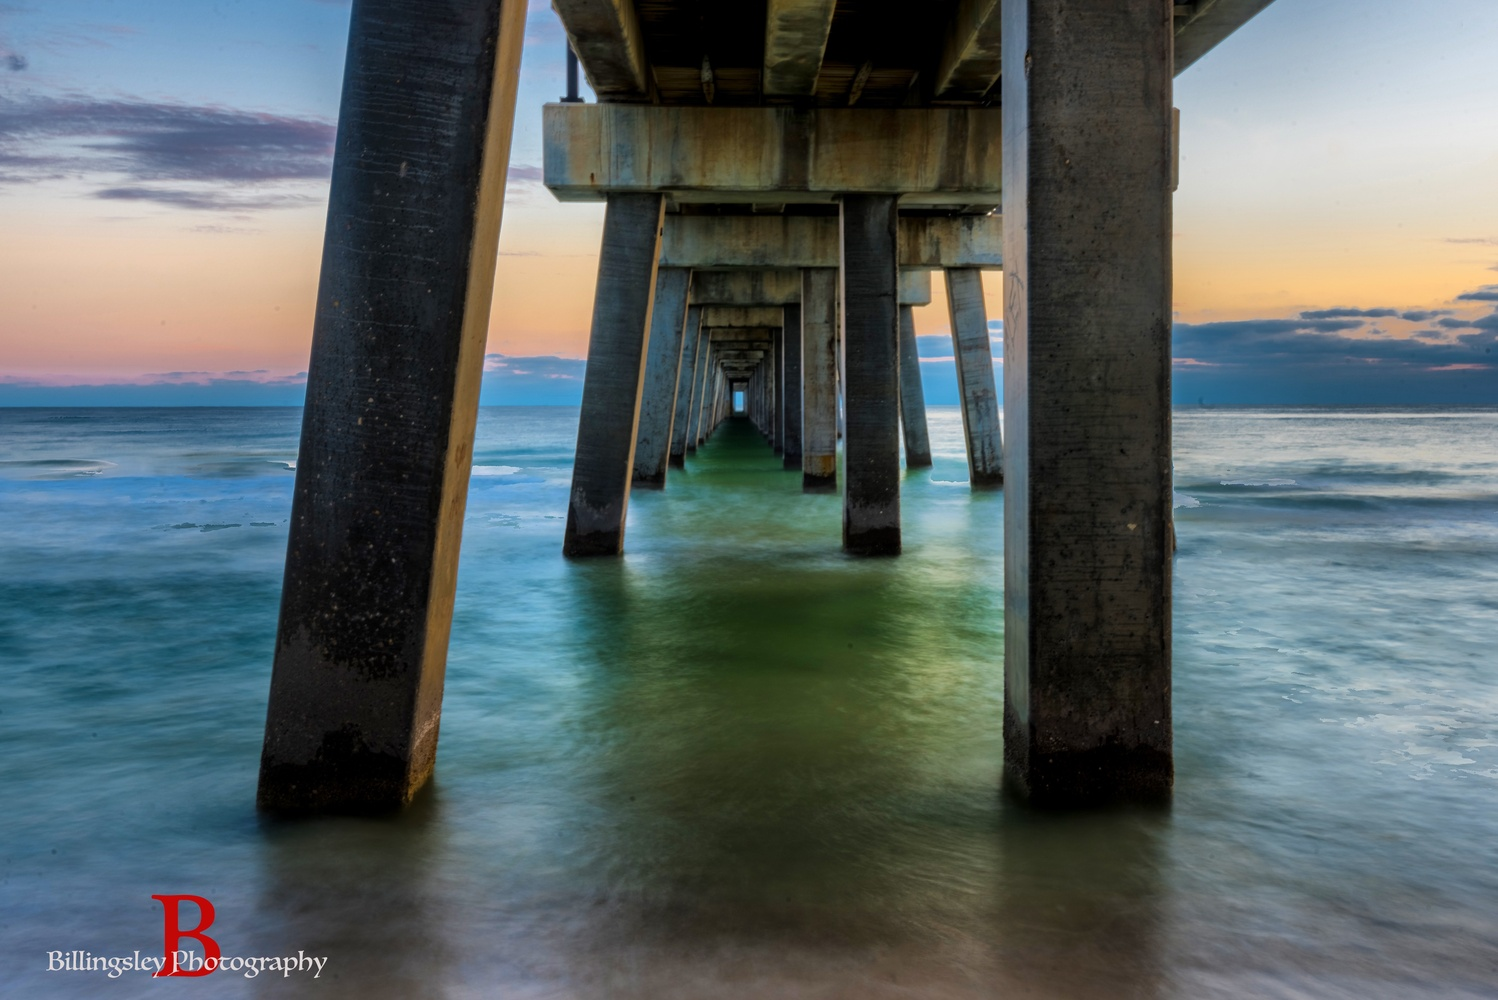 Sunset Dock down by the Gulf by Cliff Billingsley